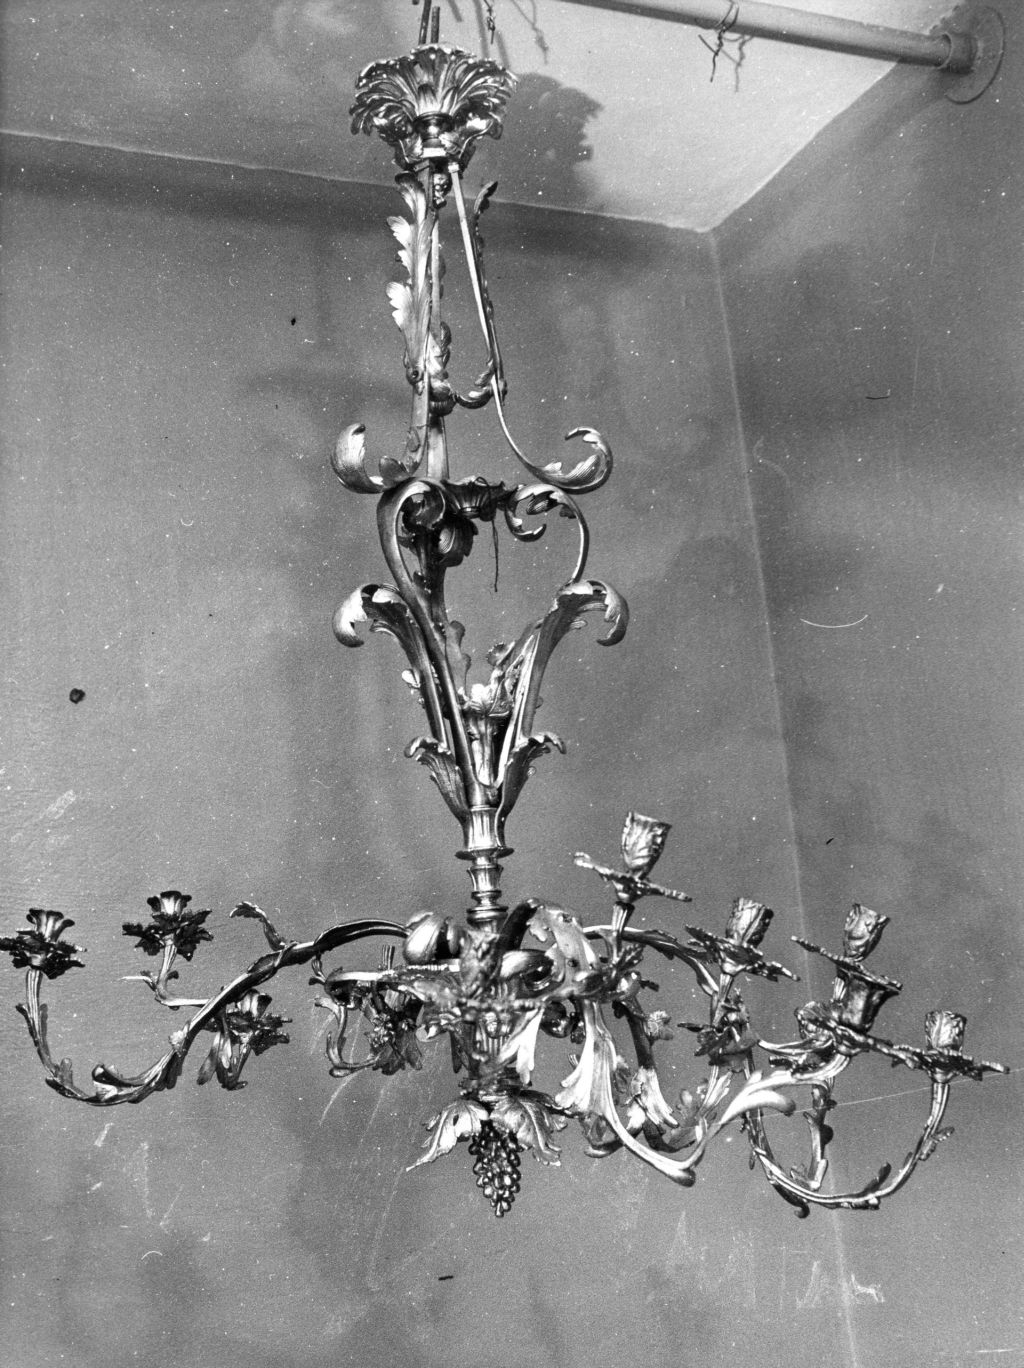 Chandelier IM-4620 before restoration, National Museum of Lithuania. Photo made in 1985, in: Kultūros paveldo centro Paveldosaugos biblioteka, f. 40, ap. 1, b. 444, fot. Nr. 1